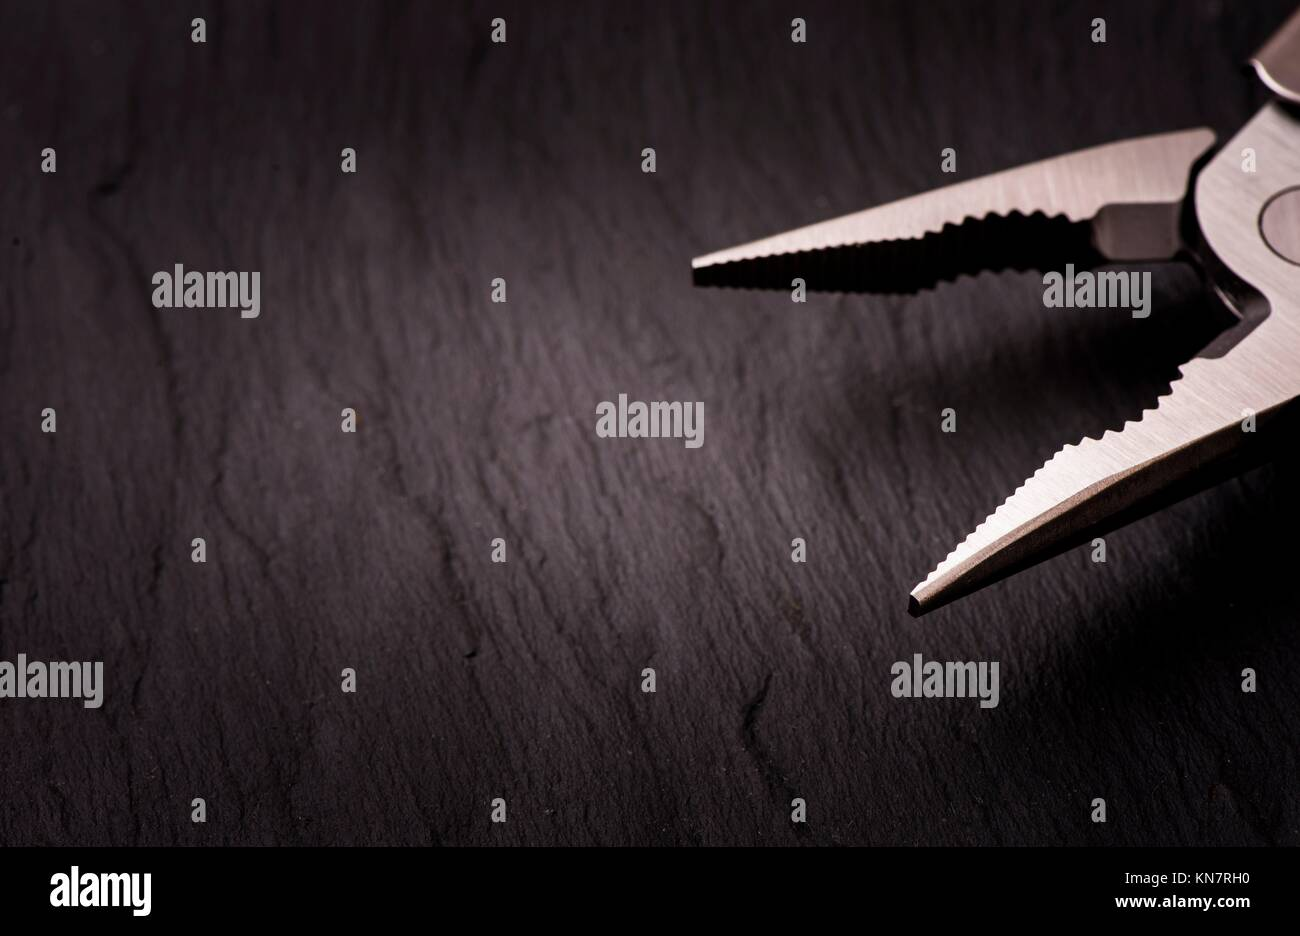 Black stone background and steel pliers. Backdrop for work tools, diy and home improvement. - Stock Image